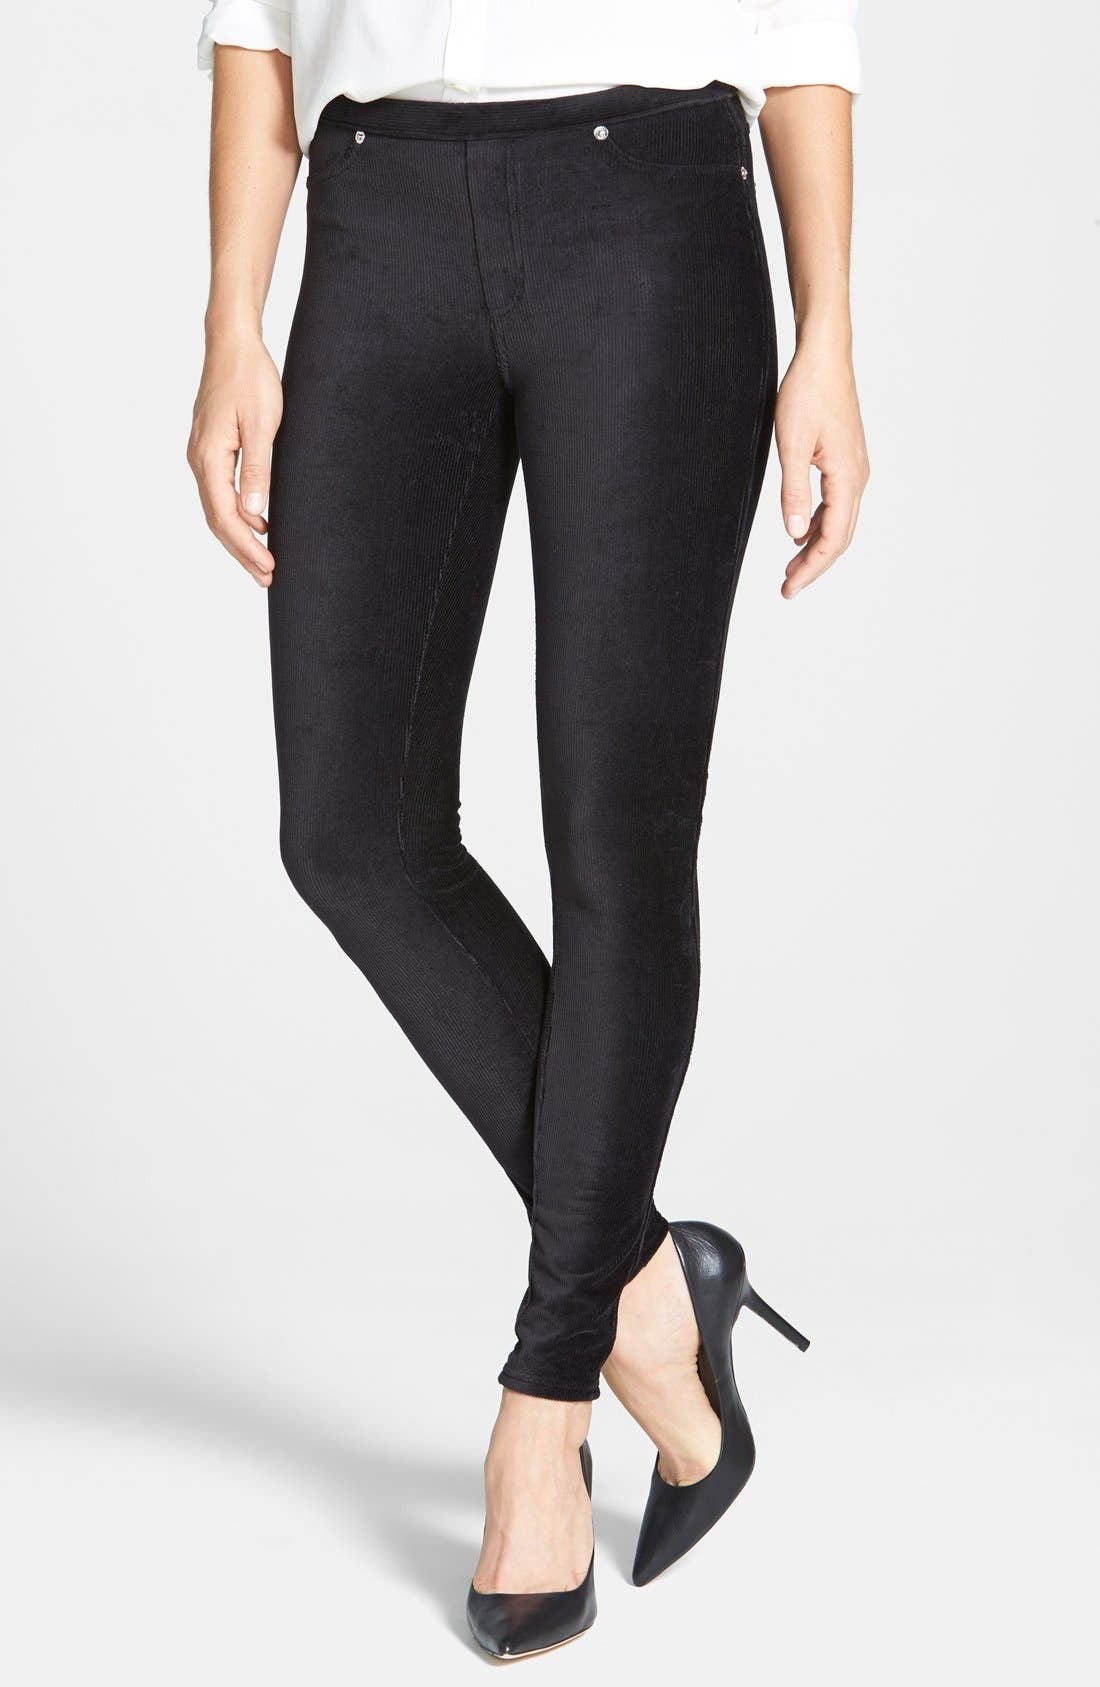 Alternate Image 1 Selected - MICHAEL Michael Kors Stretch Corduroy Leggings (Regular & Petite)